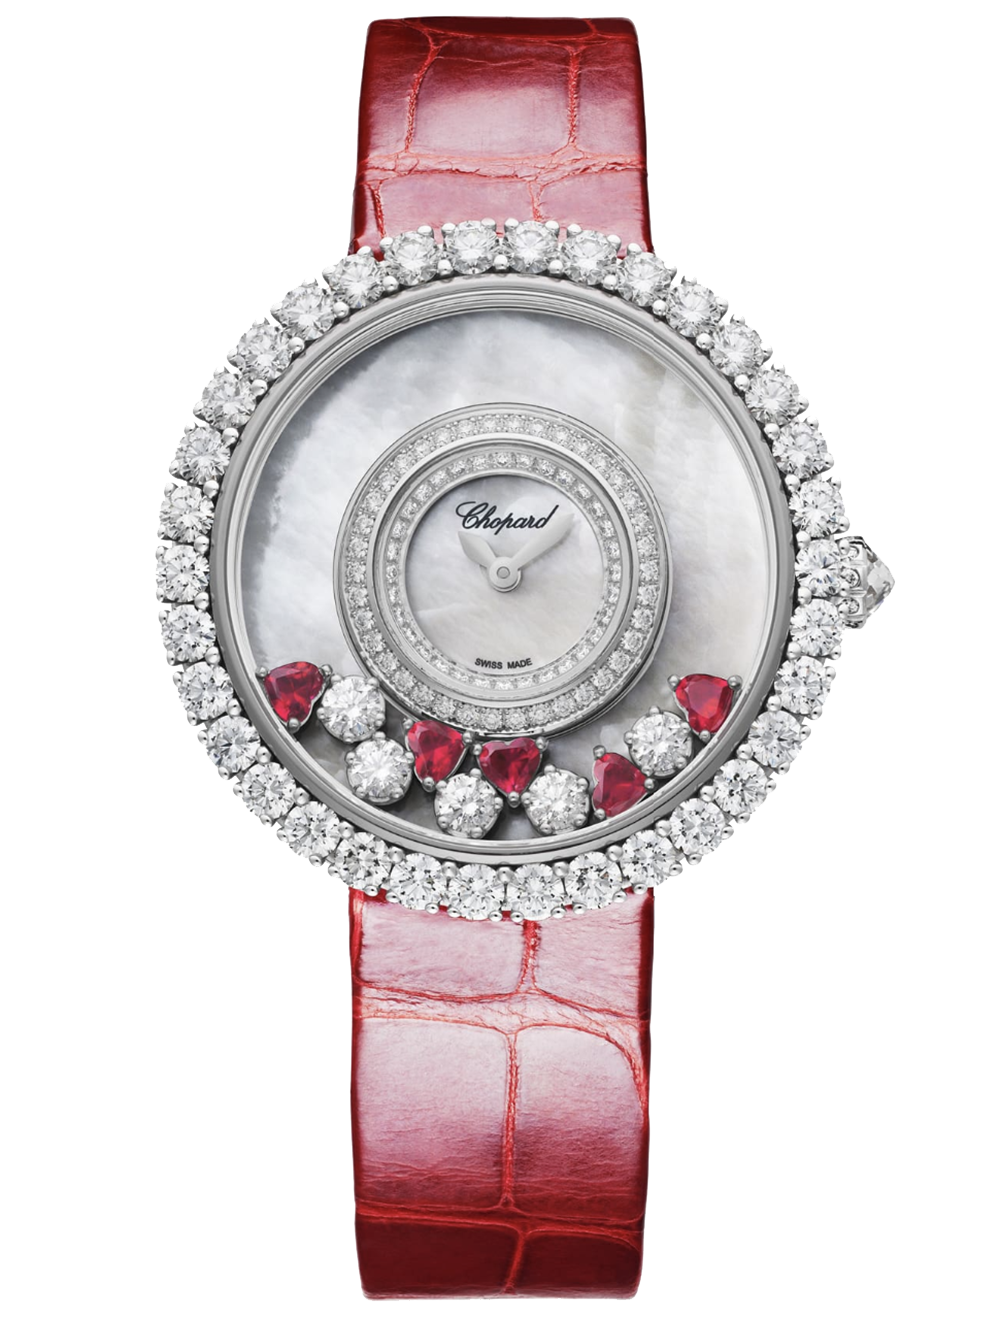 08d8a4ac1e6ed CHOPARD HAPPY DIAMONDS 204445-1006 - New Watches - Luxellence - The ...